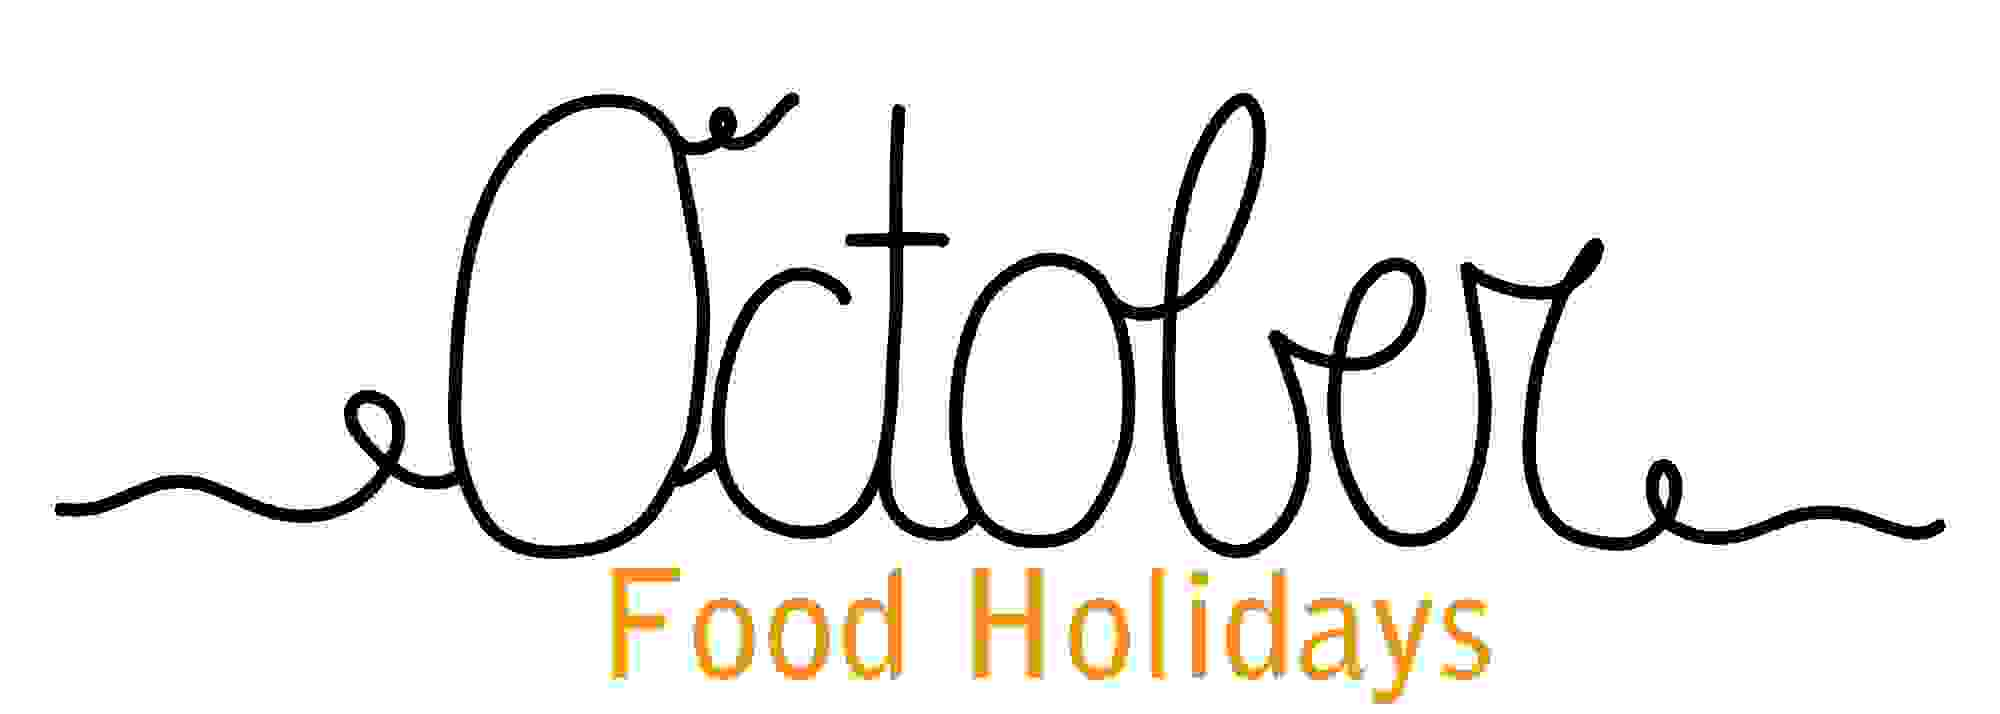 October Food Holidays logo